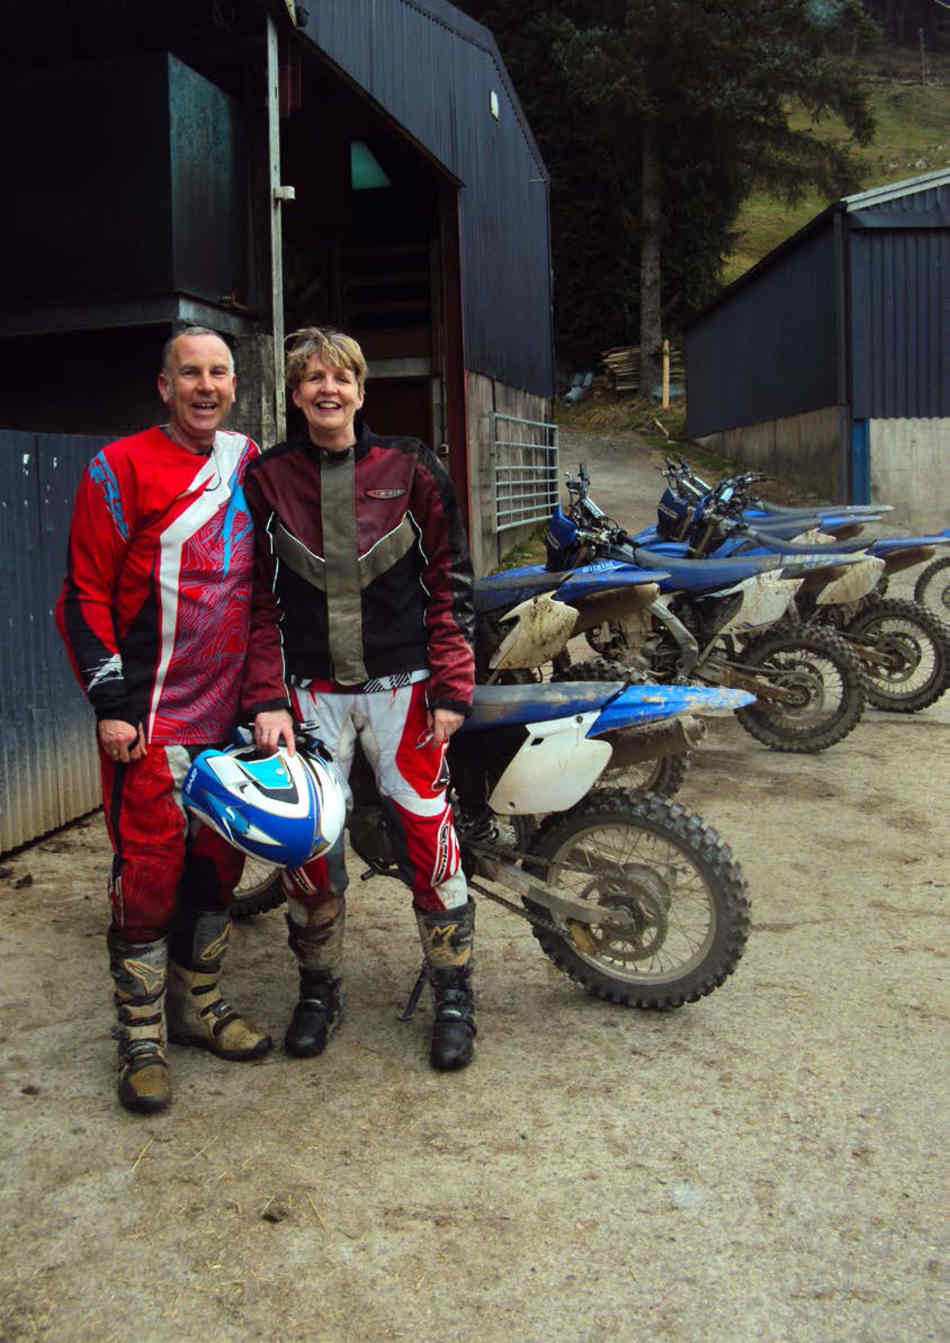 Jan and Geraint, Jan holding her helmet, standing in front of all the bikes, next to a barn.